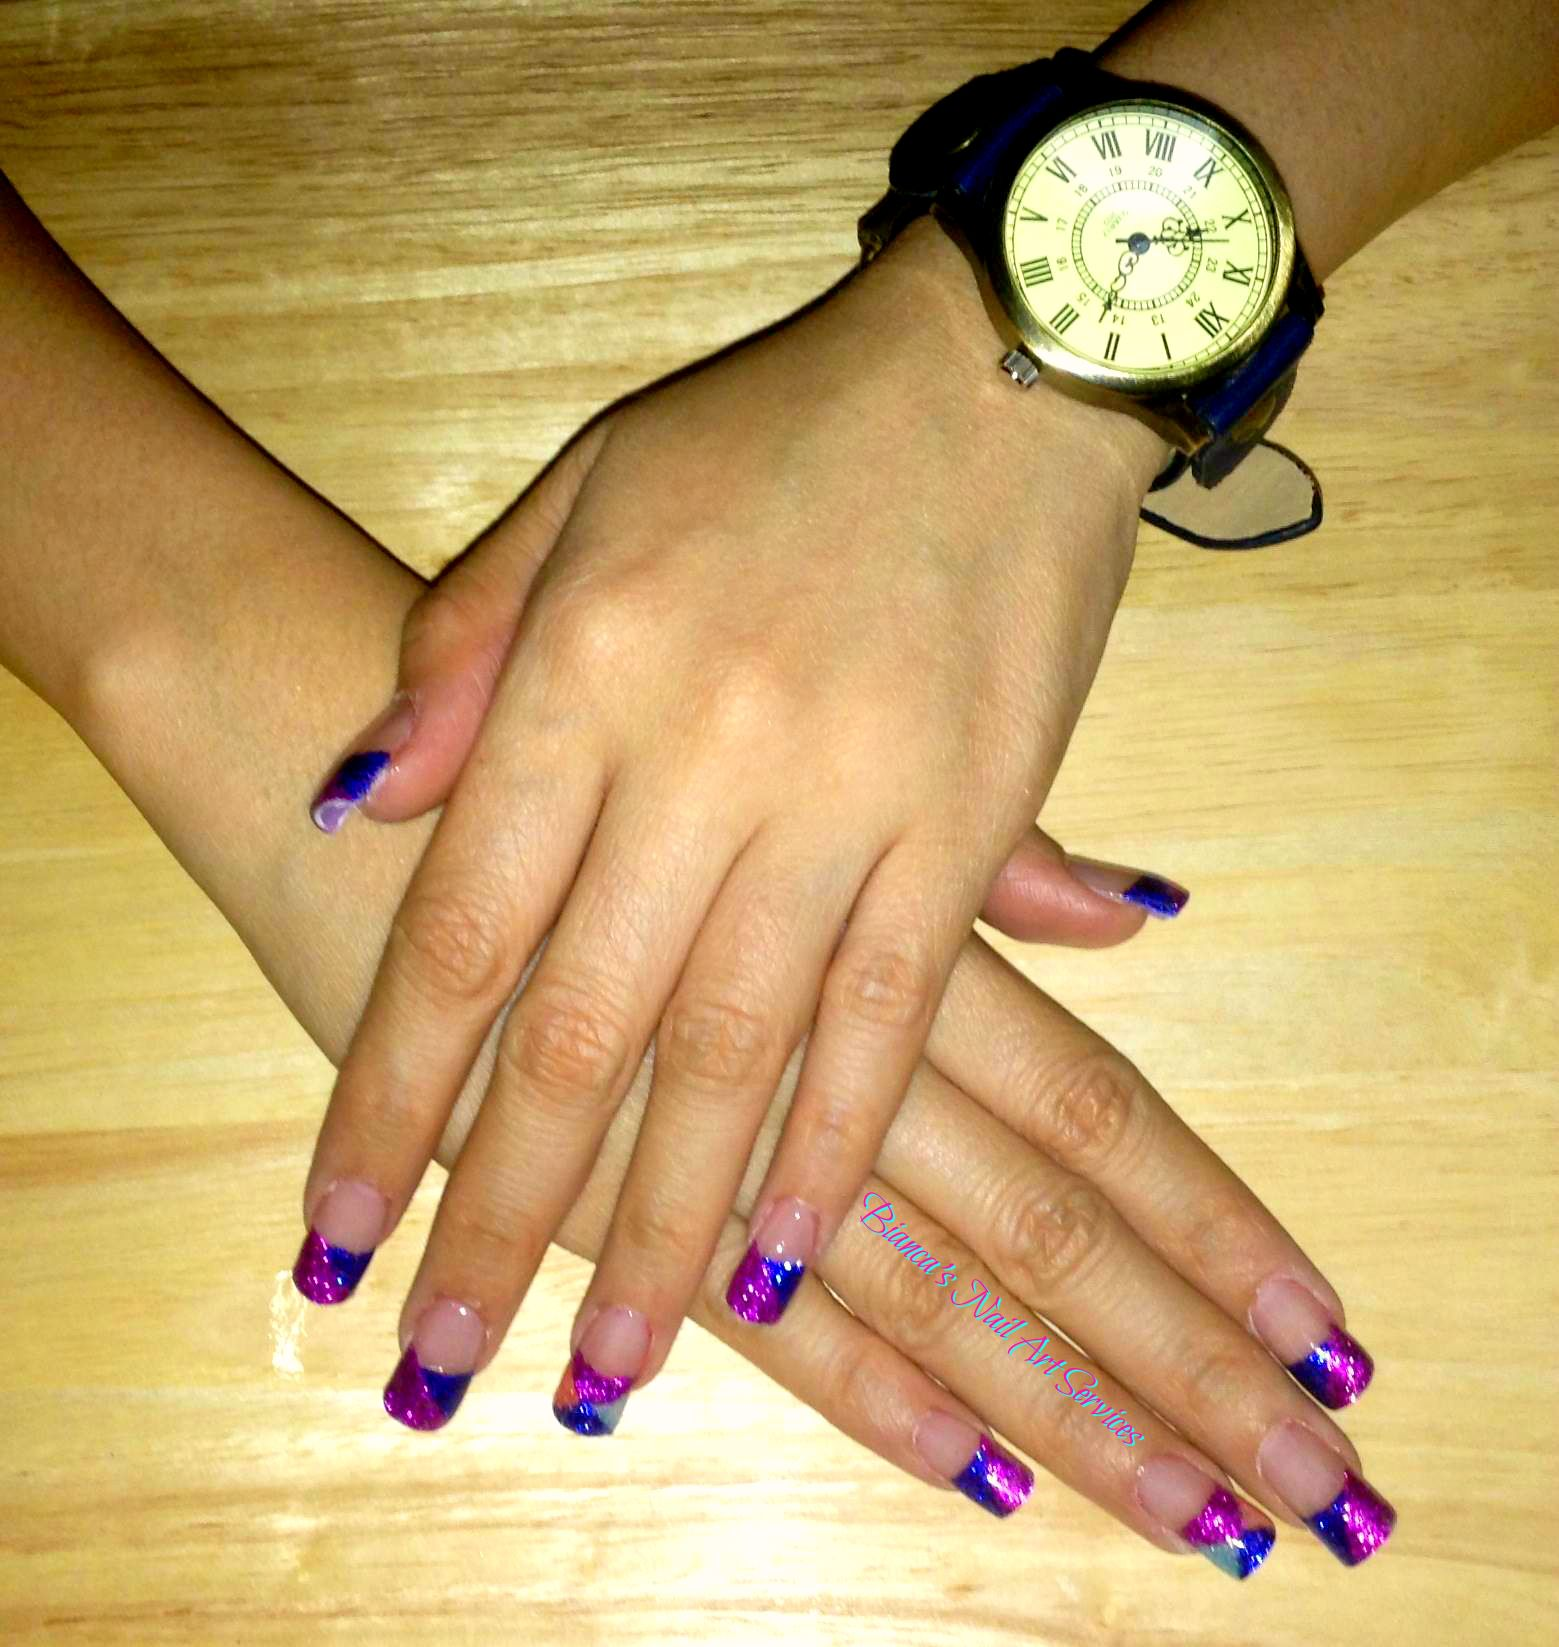 Acrylic Nails For Ms Chelly In Cebu City Glitter Acrylic Nails Using Nail Tips Nail Tip Design Diagonal Dua Nail Tip Designs Acrylic Nails Nail Designs